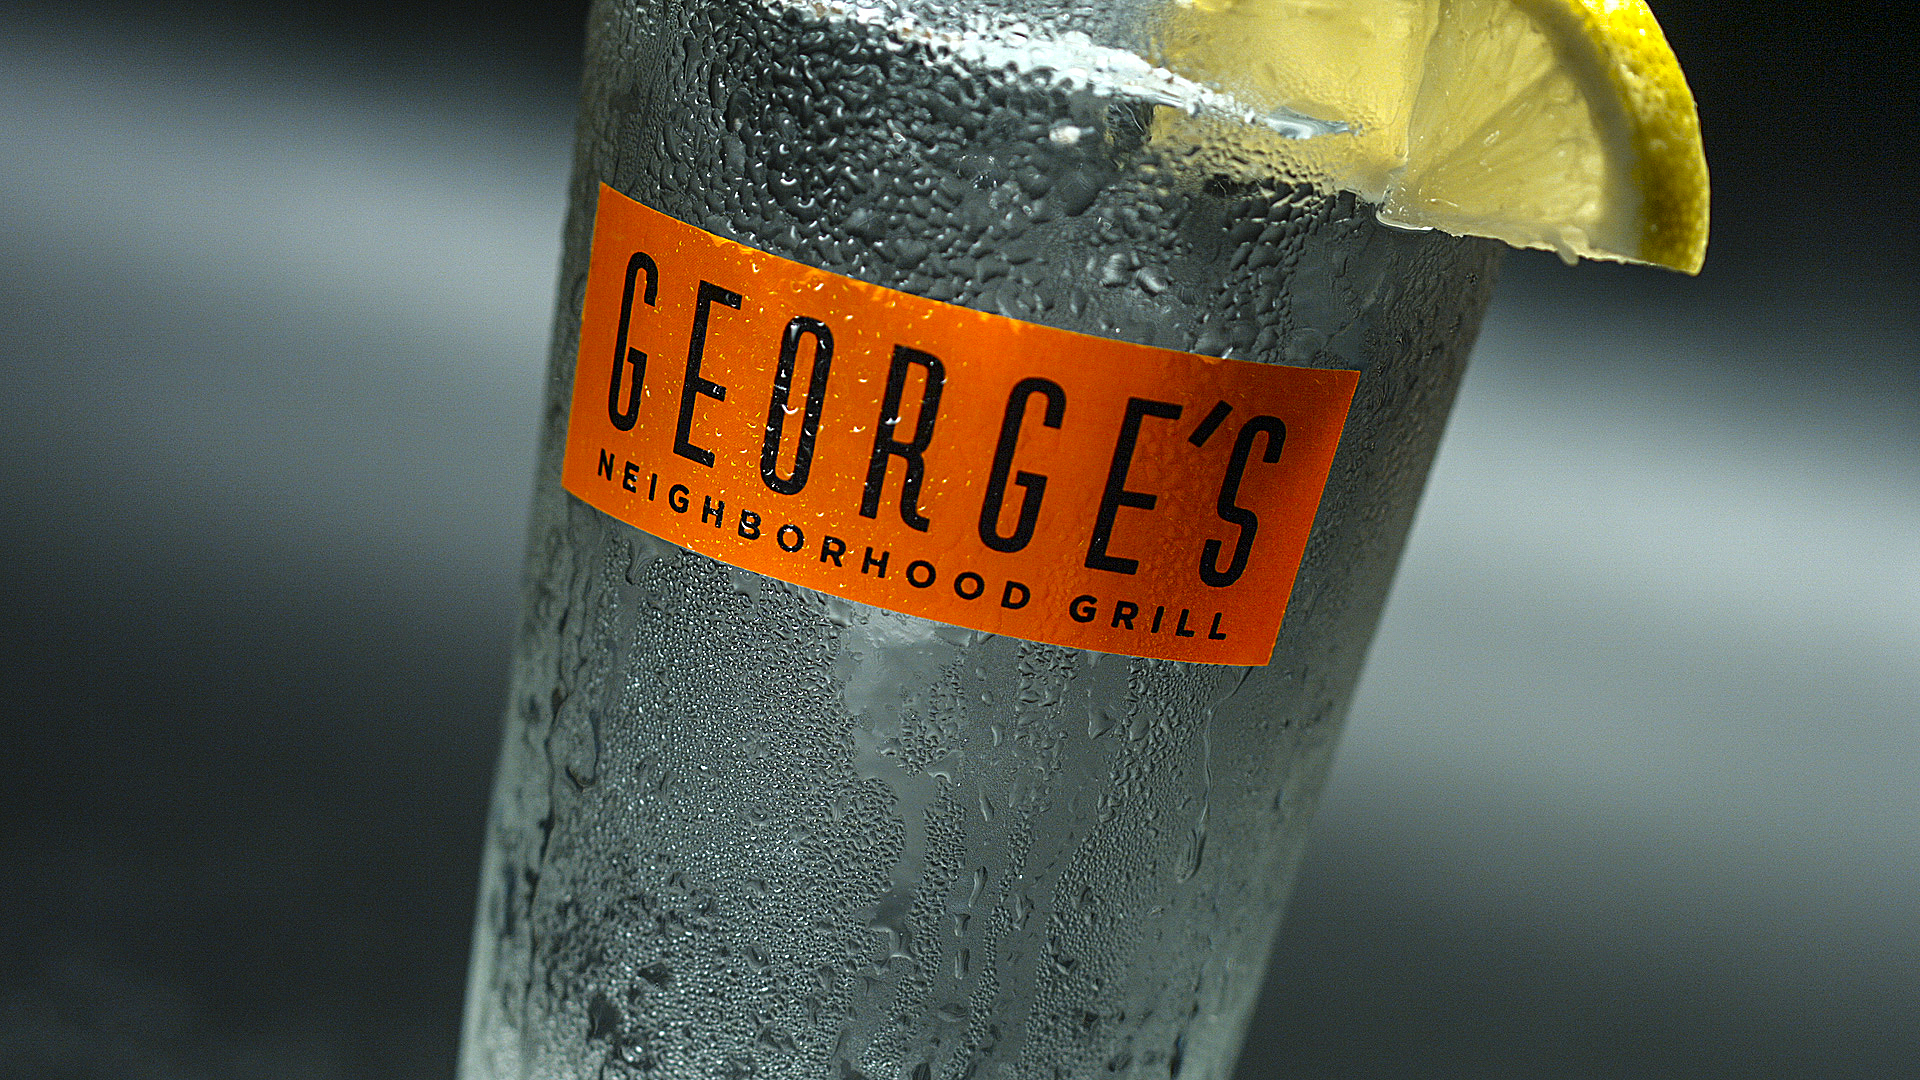 George's Neighboorhood Grill cup with a lemon wedge on the side